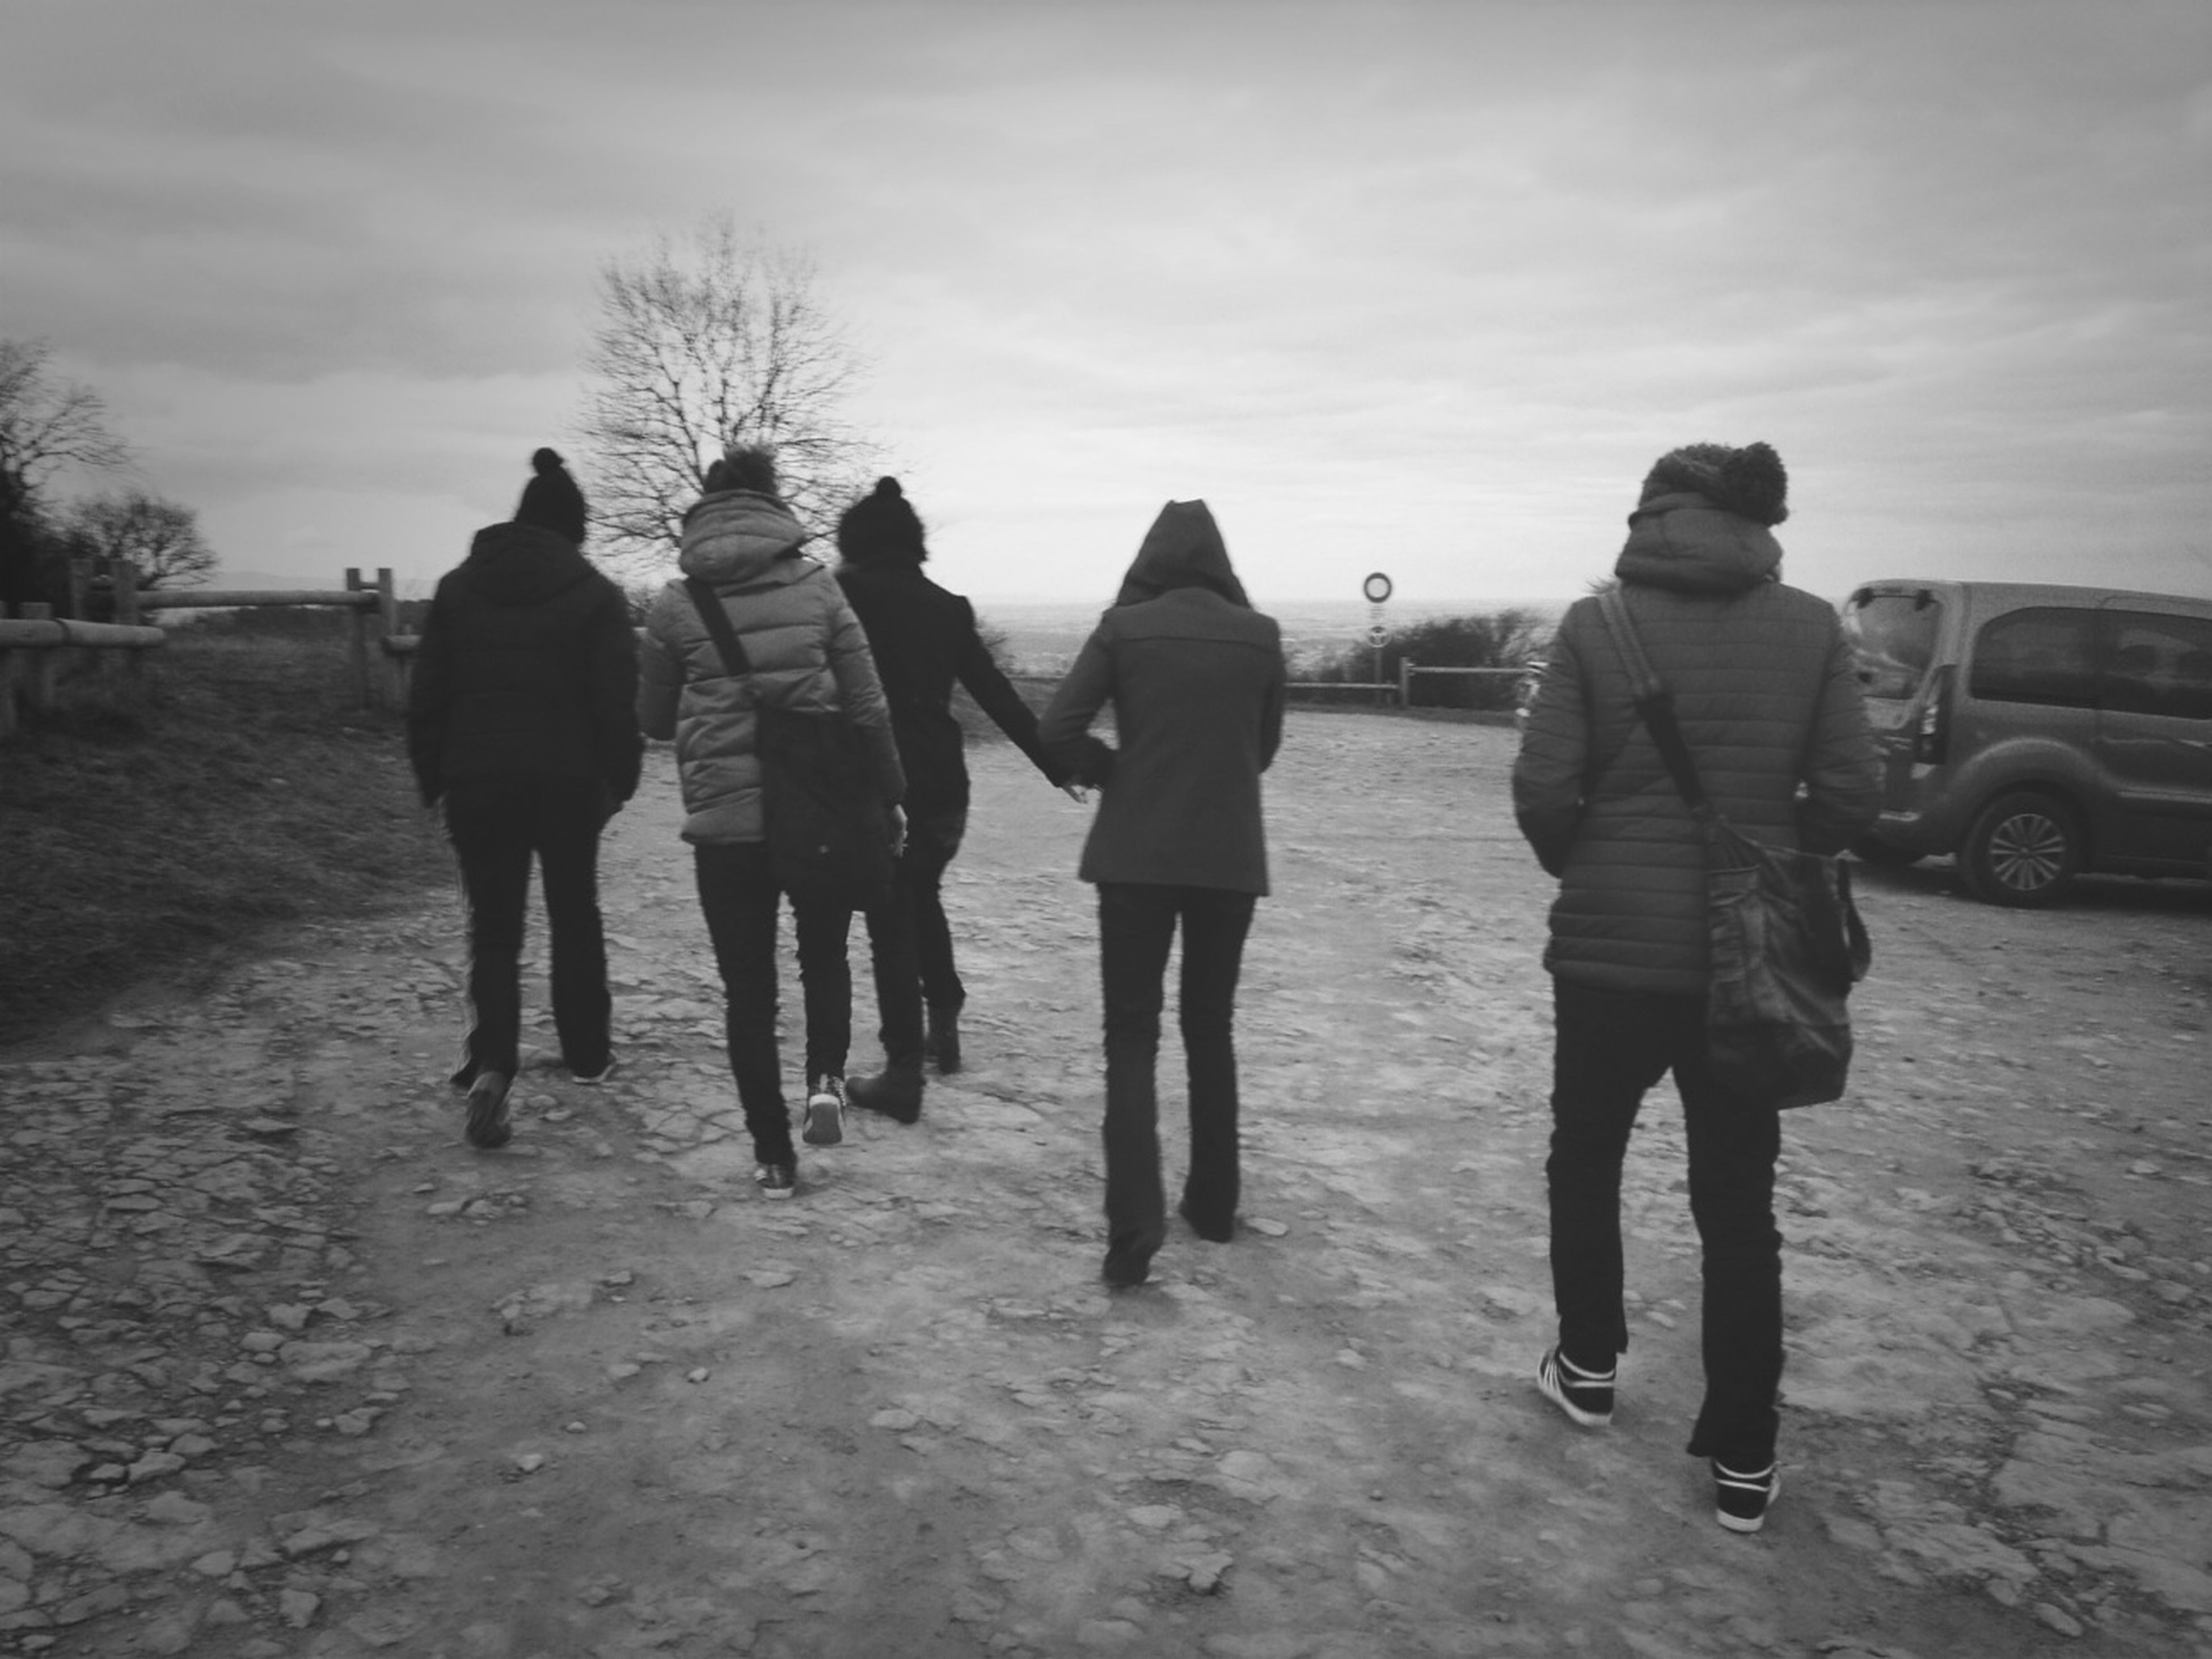 lifestyles, togetherness, men, full length, leisure activity, rear view, casual clothing, bonding, sky, walking, love, friendship, person, holding hands, boys, standing, street